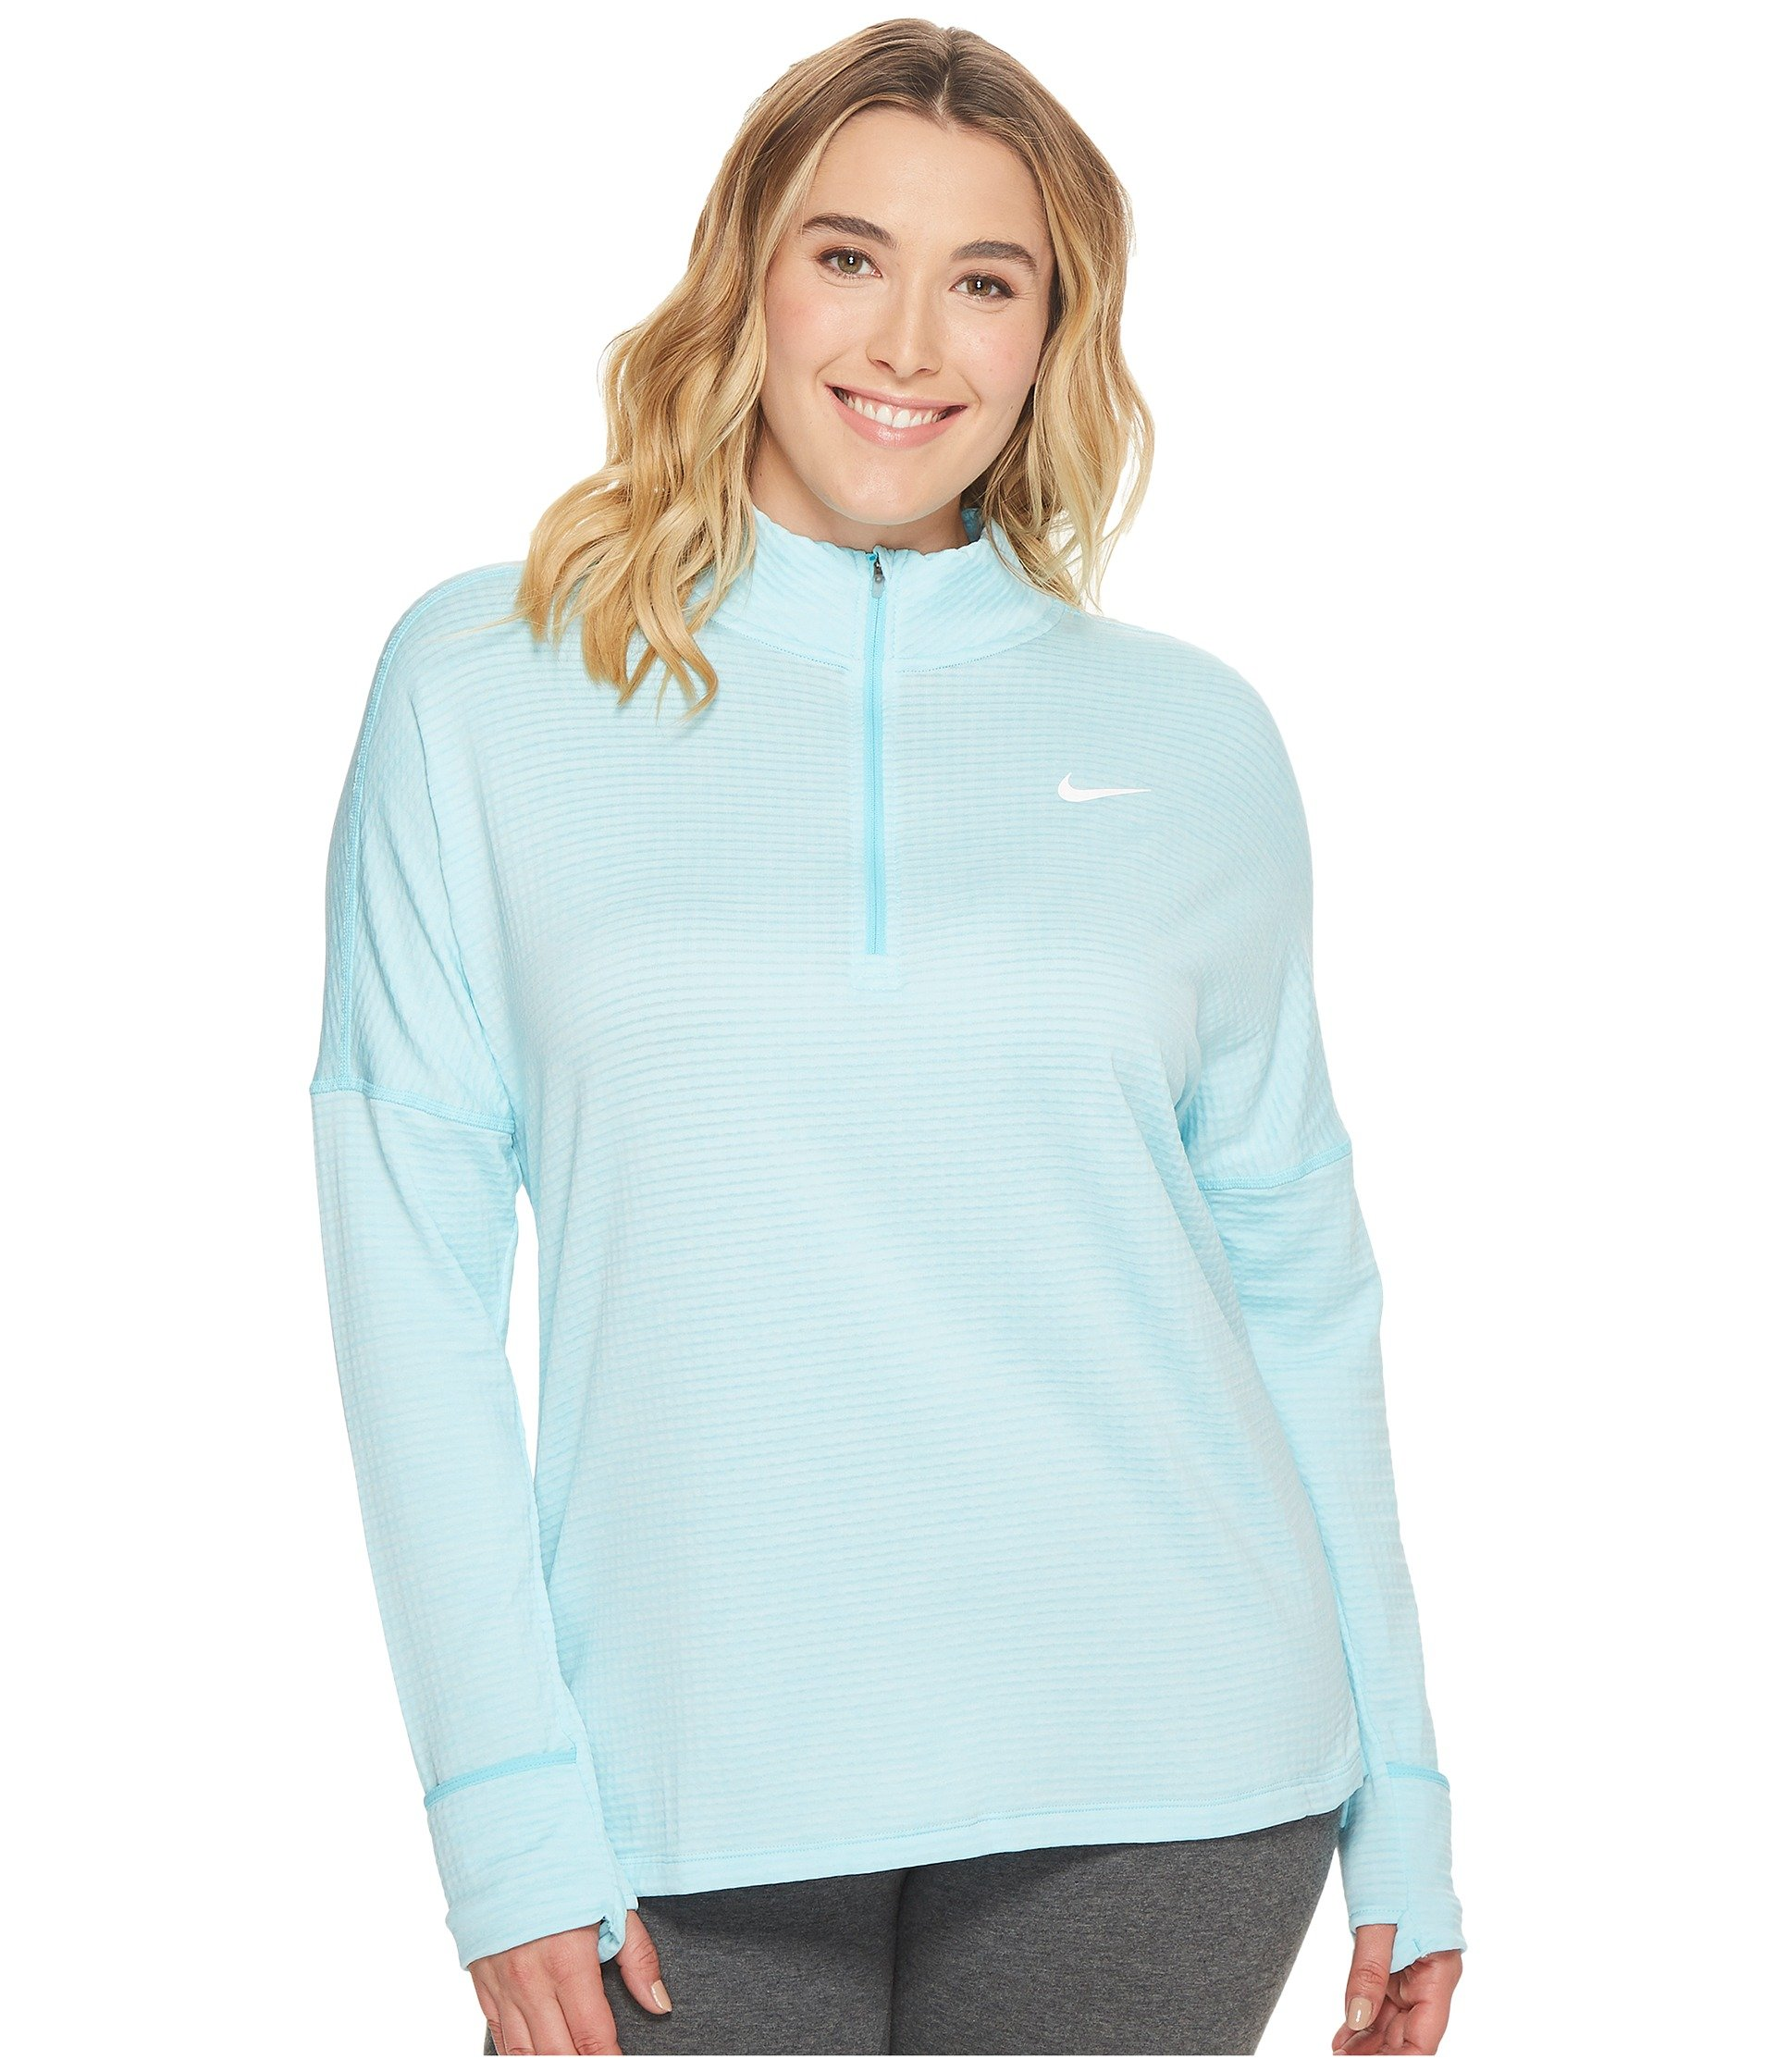 NIKE Women's Plus Size Sphere Element ½ Zip Running Shirt(Polarized Blue/HTR, 3X) by Nike